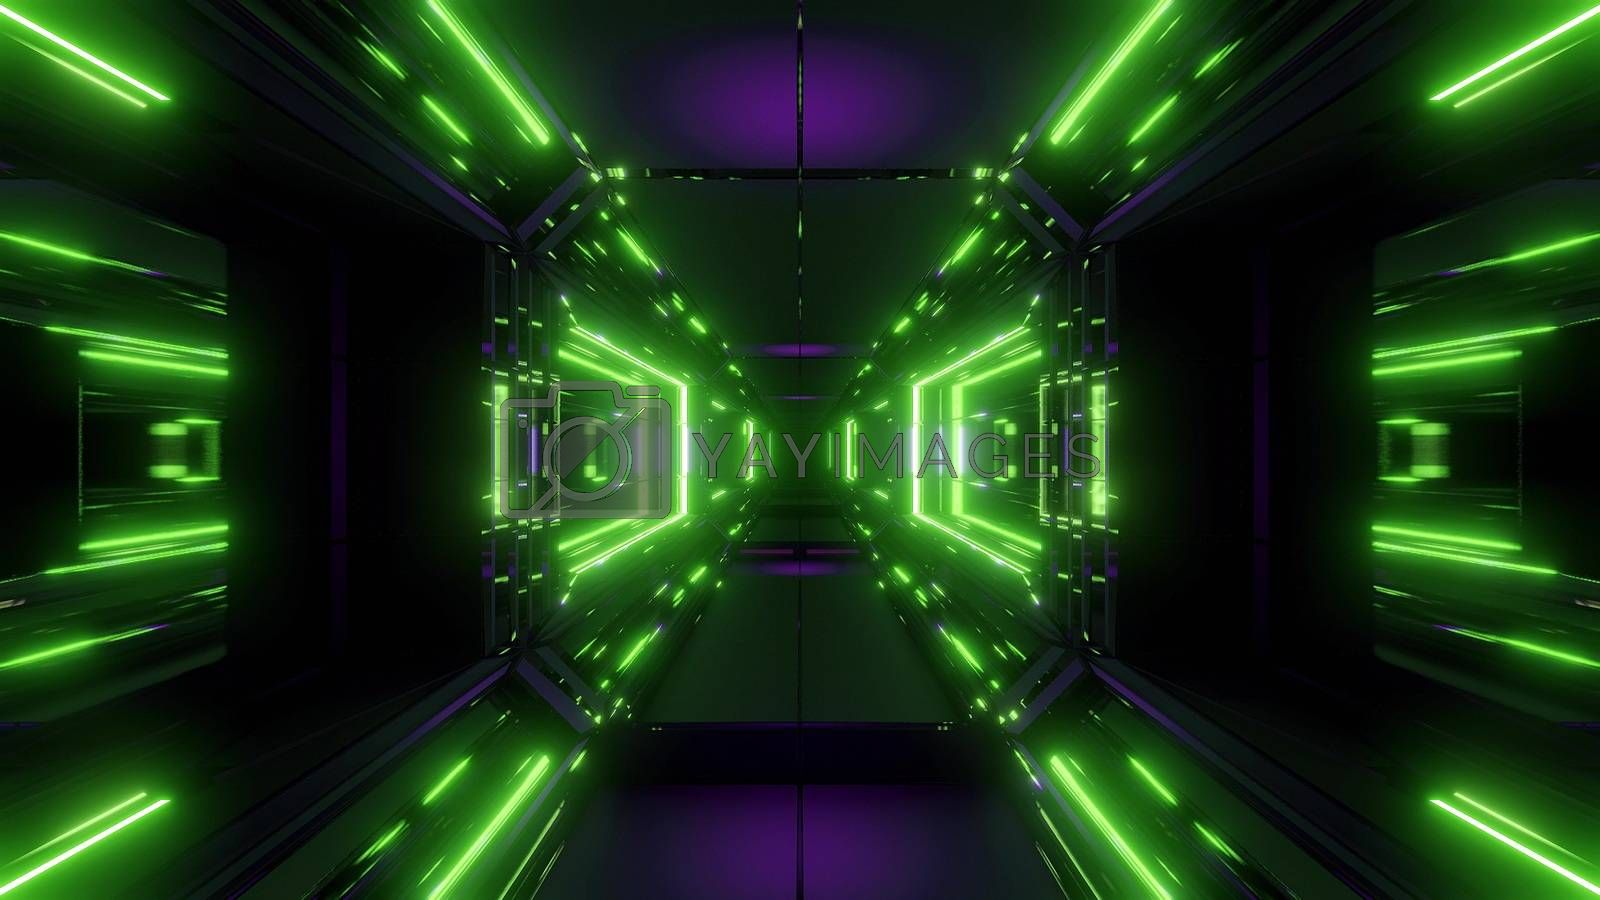 scifi space tunnel corridor with glowing shiny lights 3d illustration background by tunnelmotions